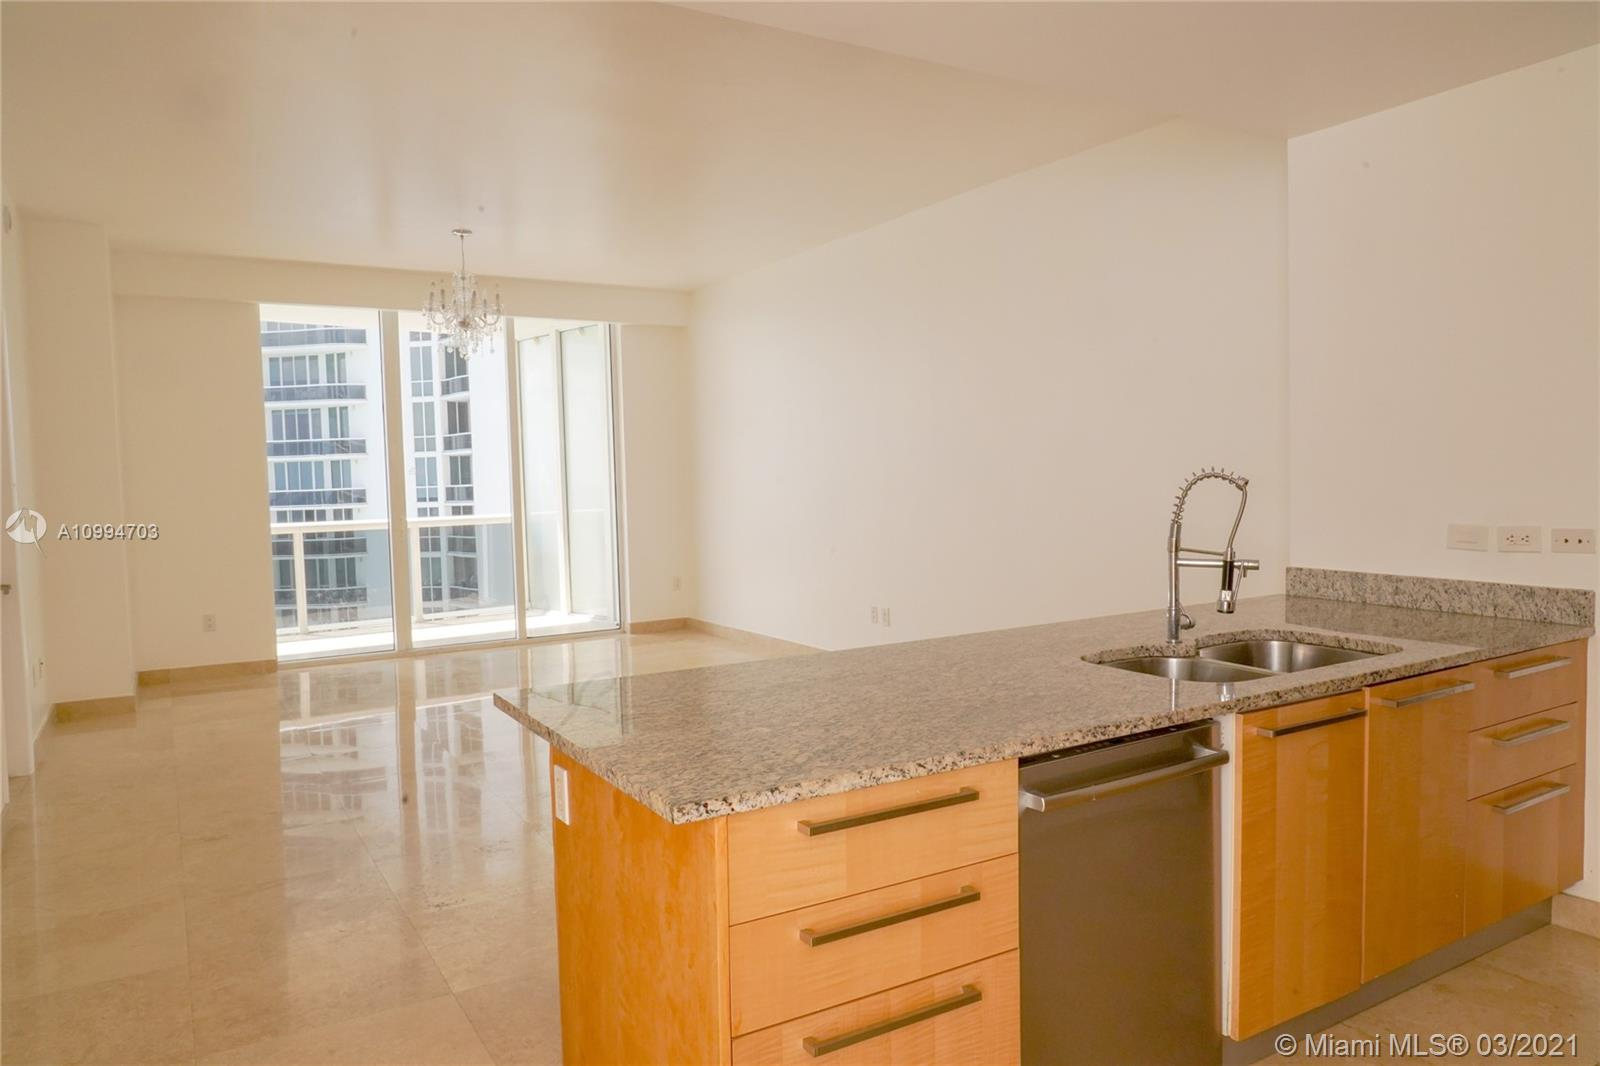 Beautiful Apartment with amazing views!! Northeast and Southeast Balconies. Gourmet kitchen featuring the highest quality. Italian cabinetry, Sub Zero and Wolf appliance. Must to see